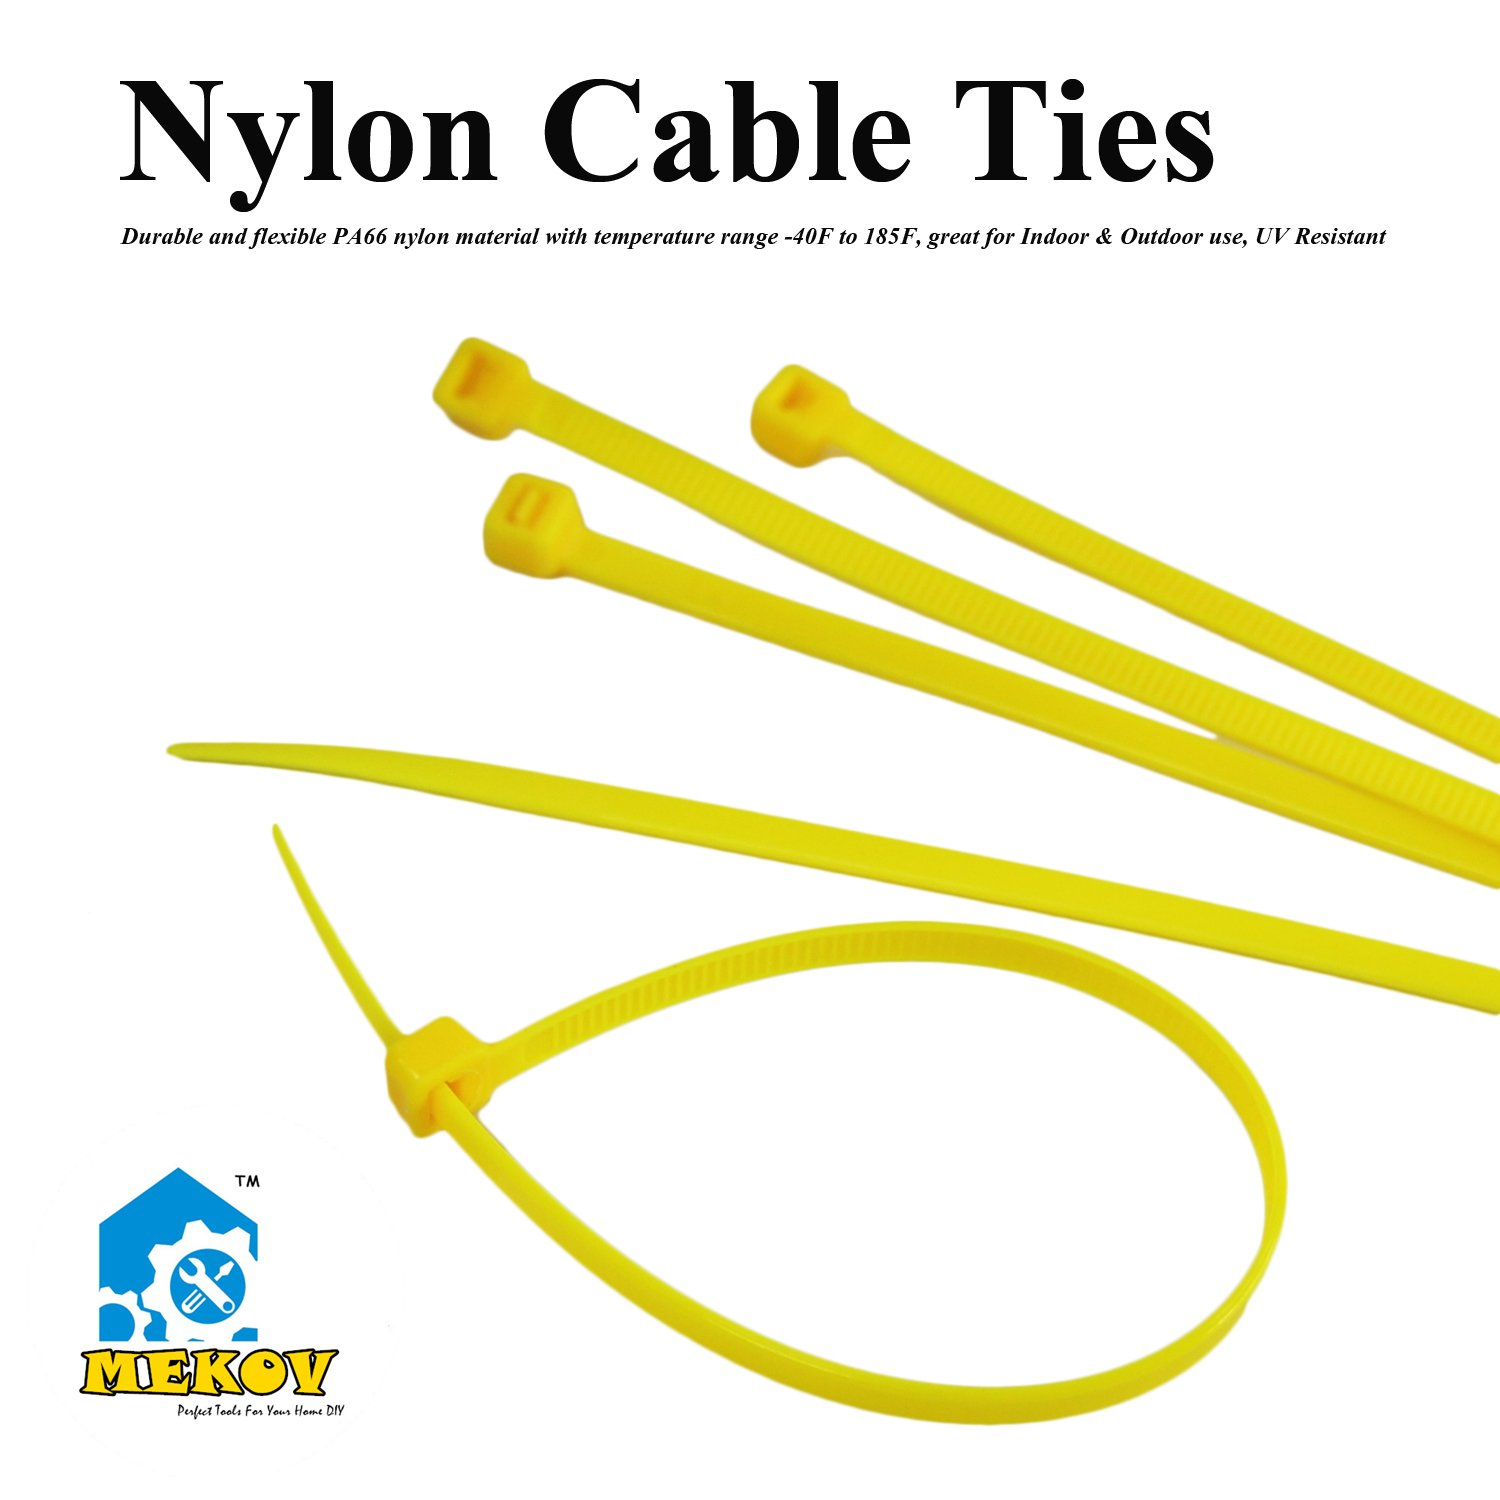 Nylon Cable Ties, Mekov, 6 Inch Heavy Duty Cable Ties, 18-LB Tensile Strength, Zip Ties with 0.1 Inch Width, Durable, Indoor & Outdoor use, UV Resistant (6'', 1000 Pack, Yellow) by Mekov (Image #2)